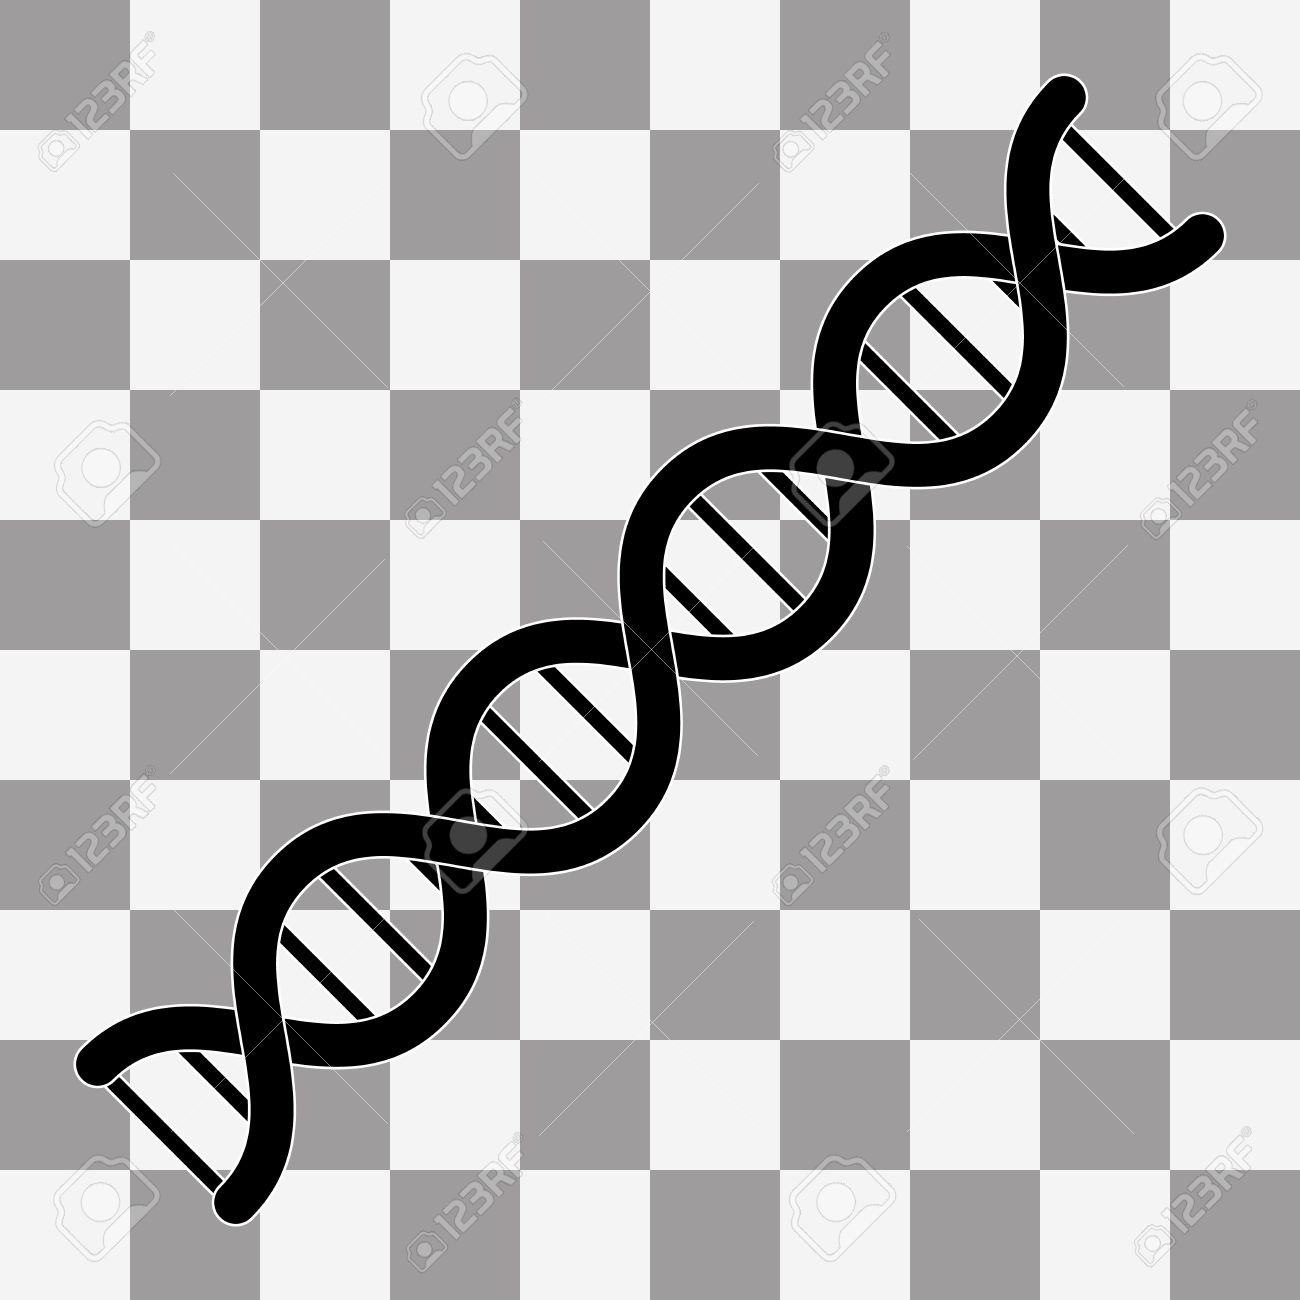 vector the dna icon. dna symbol. flat vector illustration on